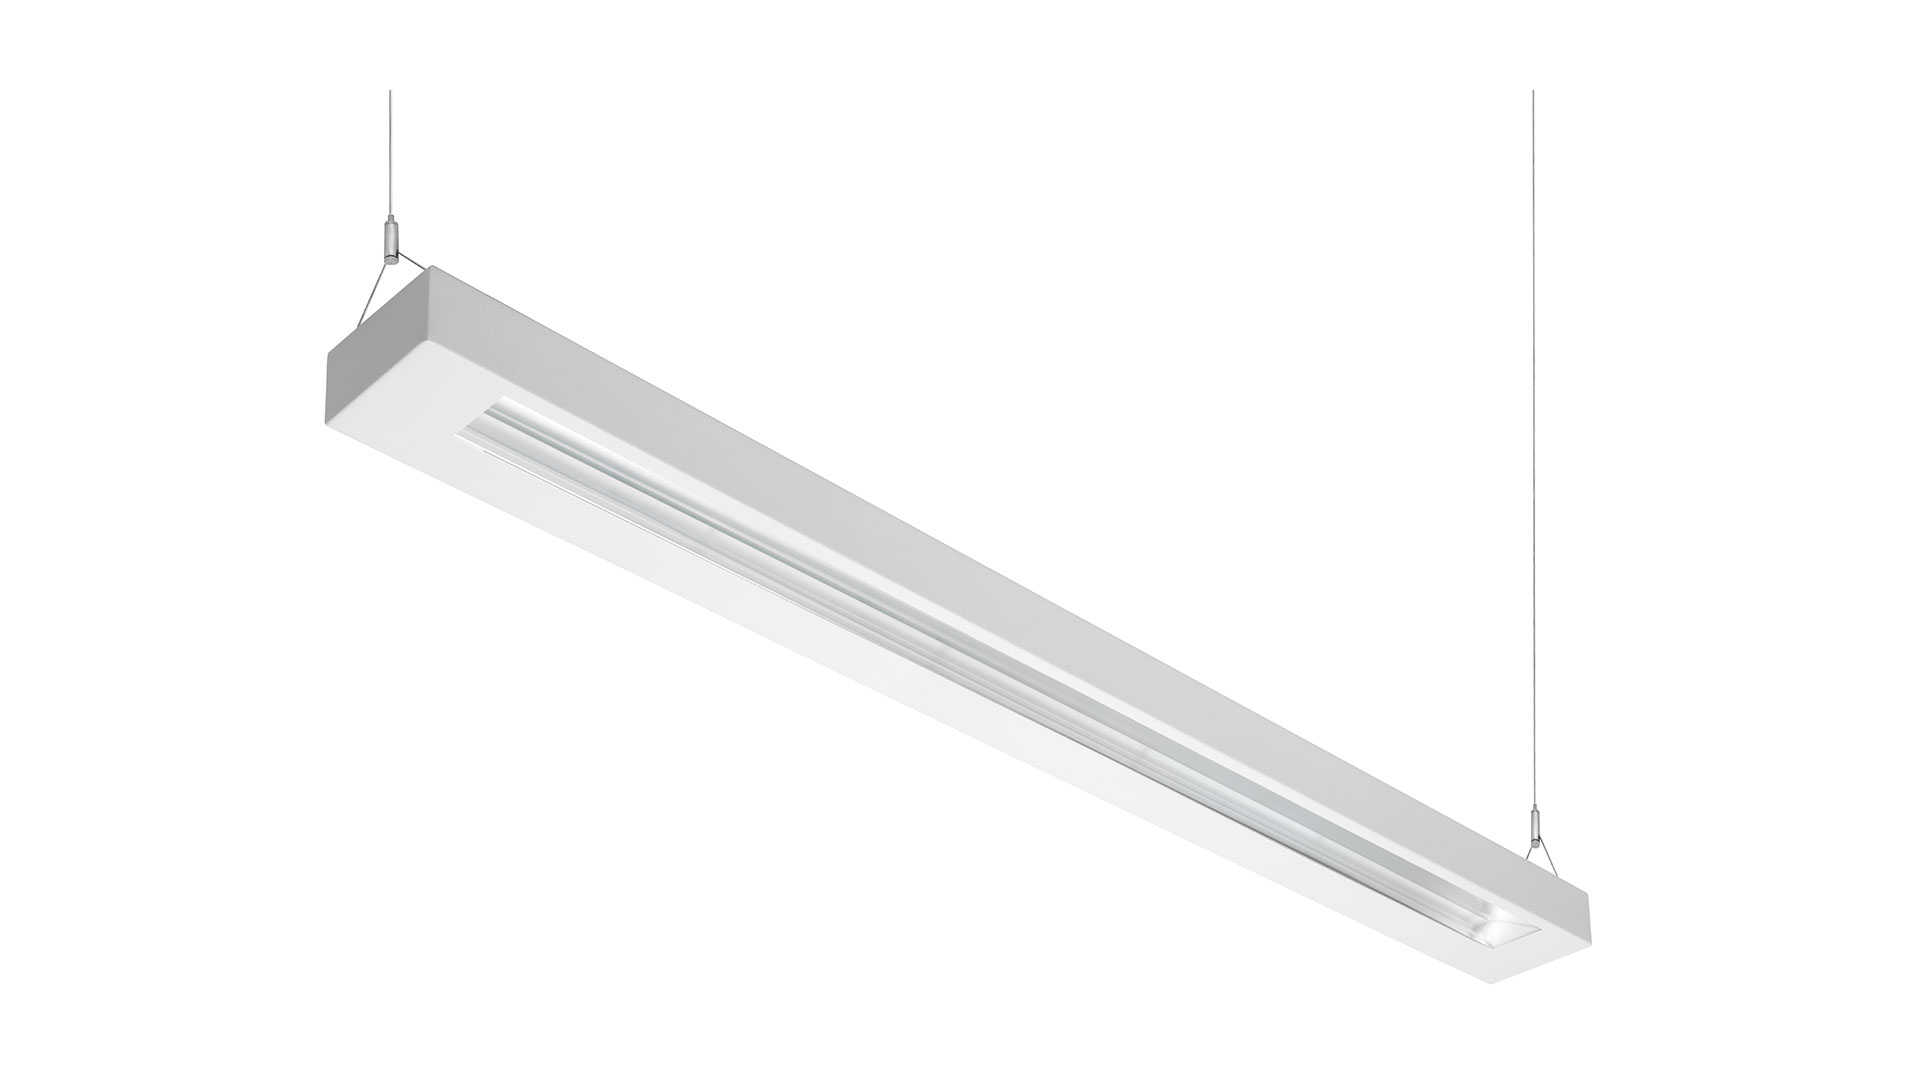 Image of product type  LAMBDA LED ASYM